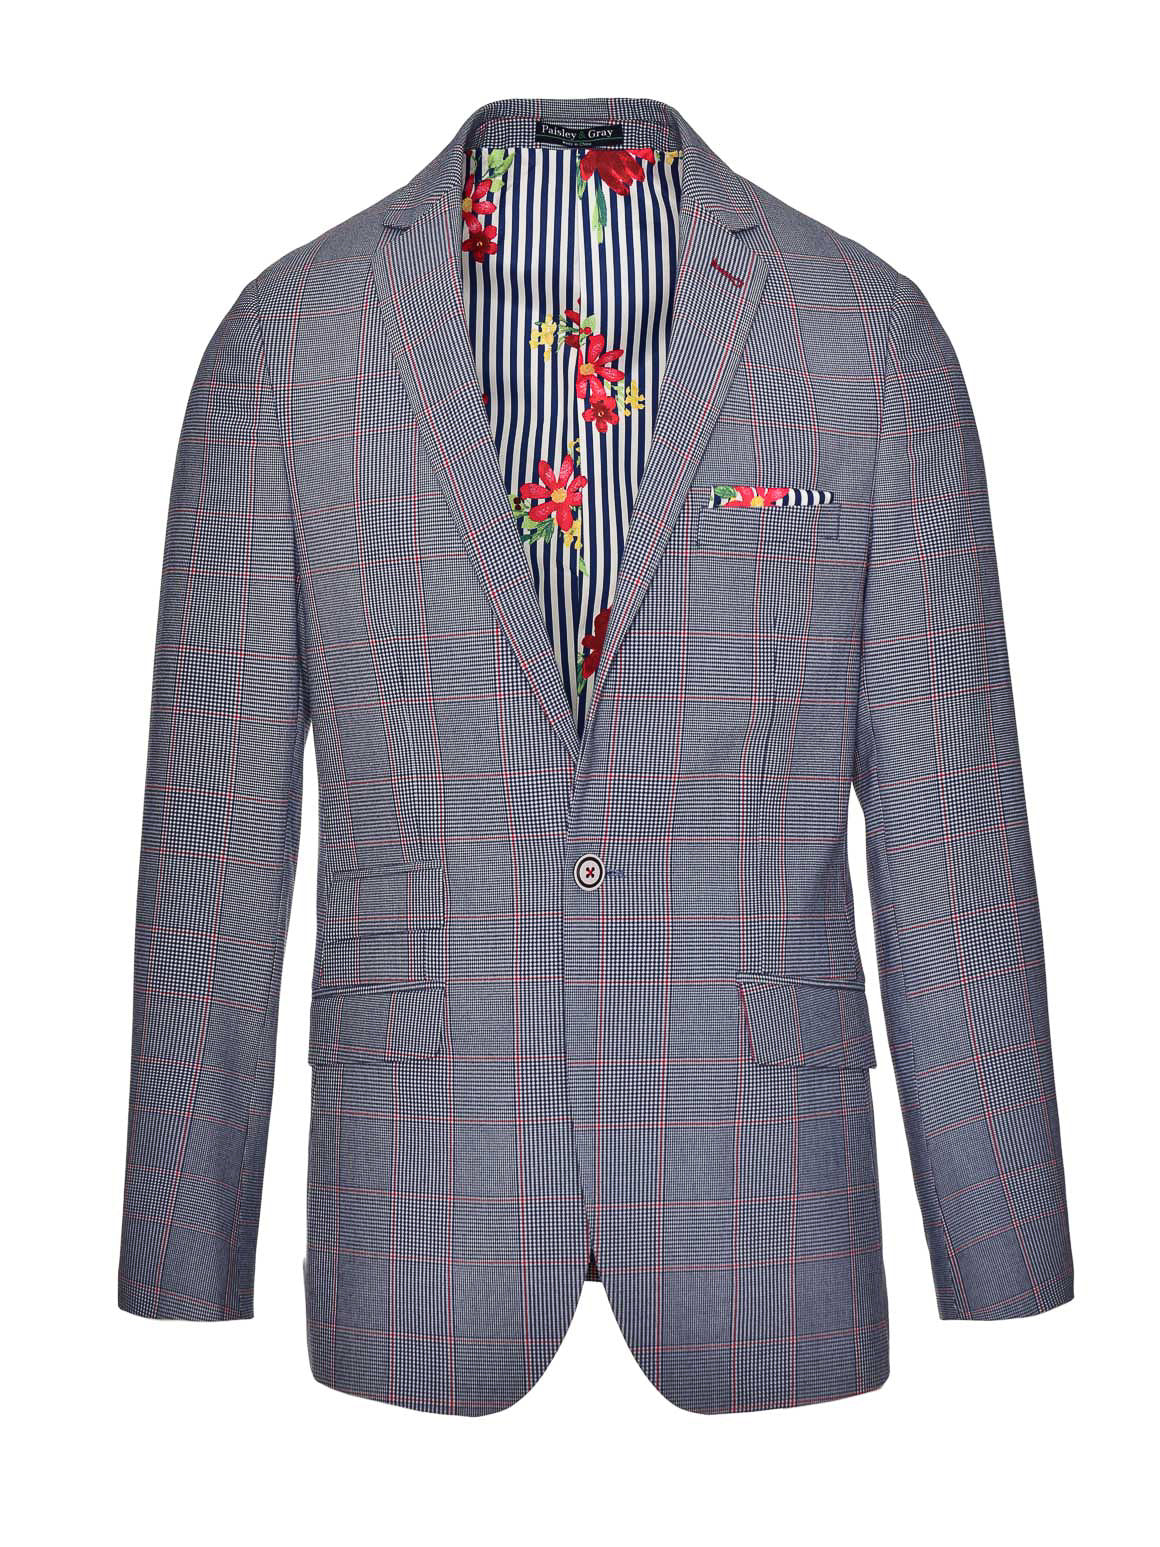 Kingsland Notch Jacket  - Blue Red Window Plaid